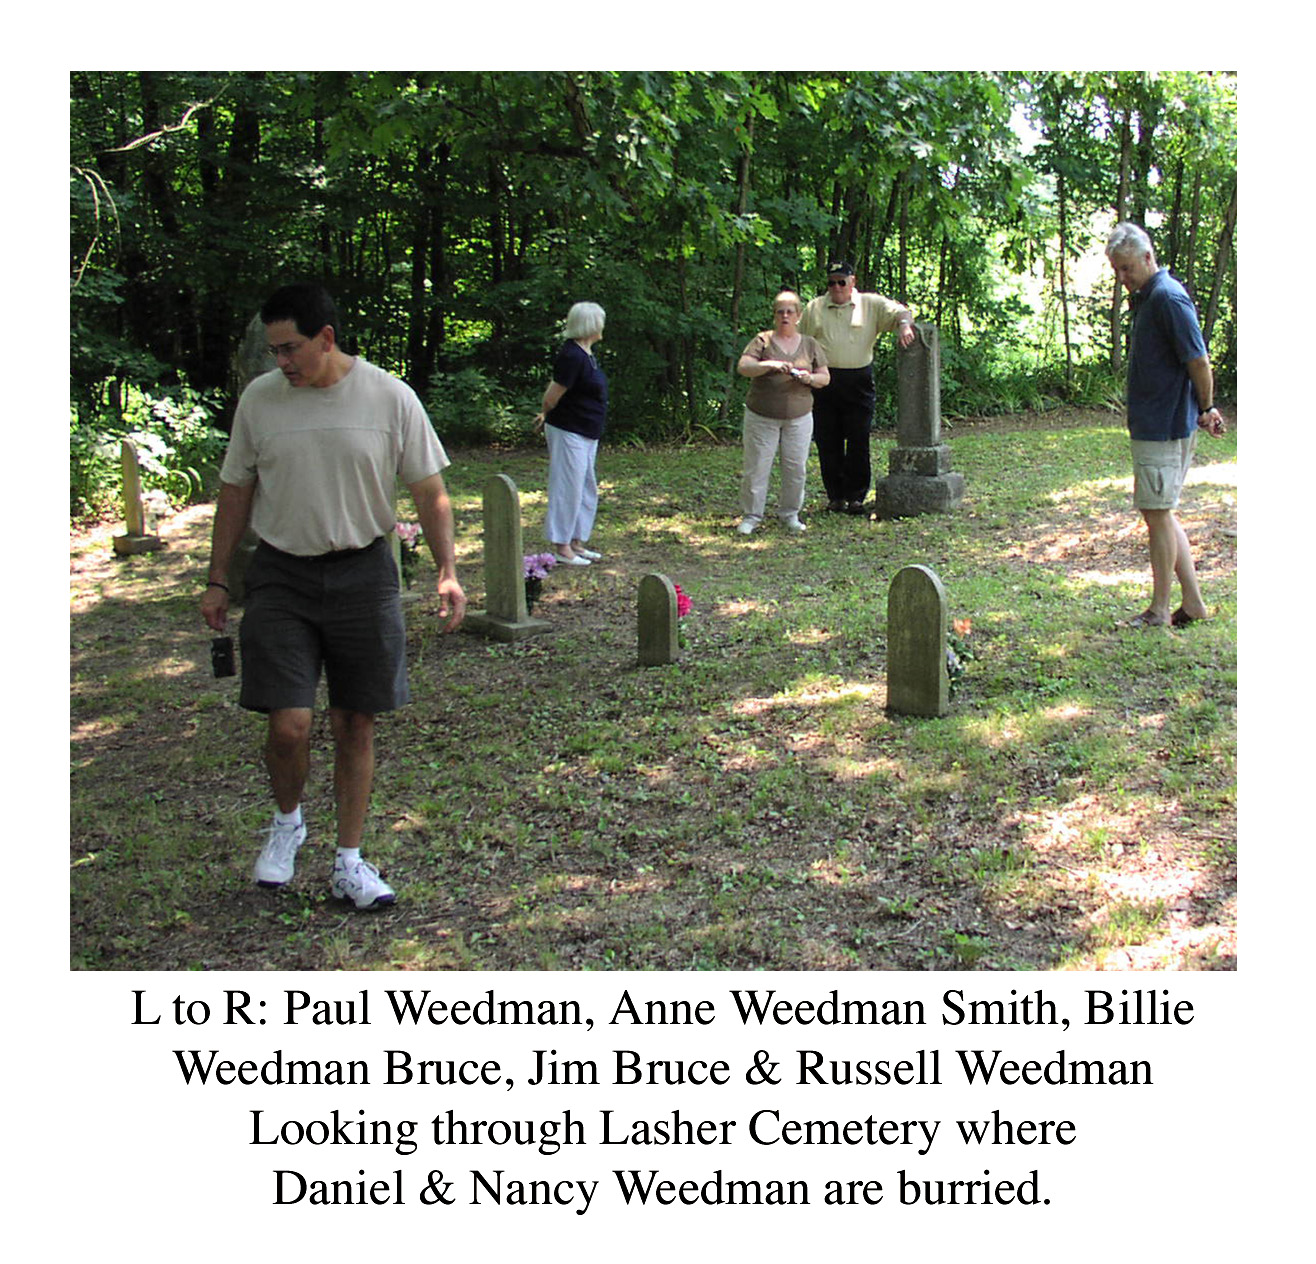 Indiana perry county bristow - At The Top Of The Hill Off Hwy 145 Is Bristow Cemetery Where Many Weedman And Related Family Members Are Buried Nick Weedman Spoke To The Group On The